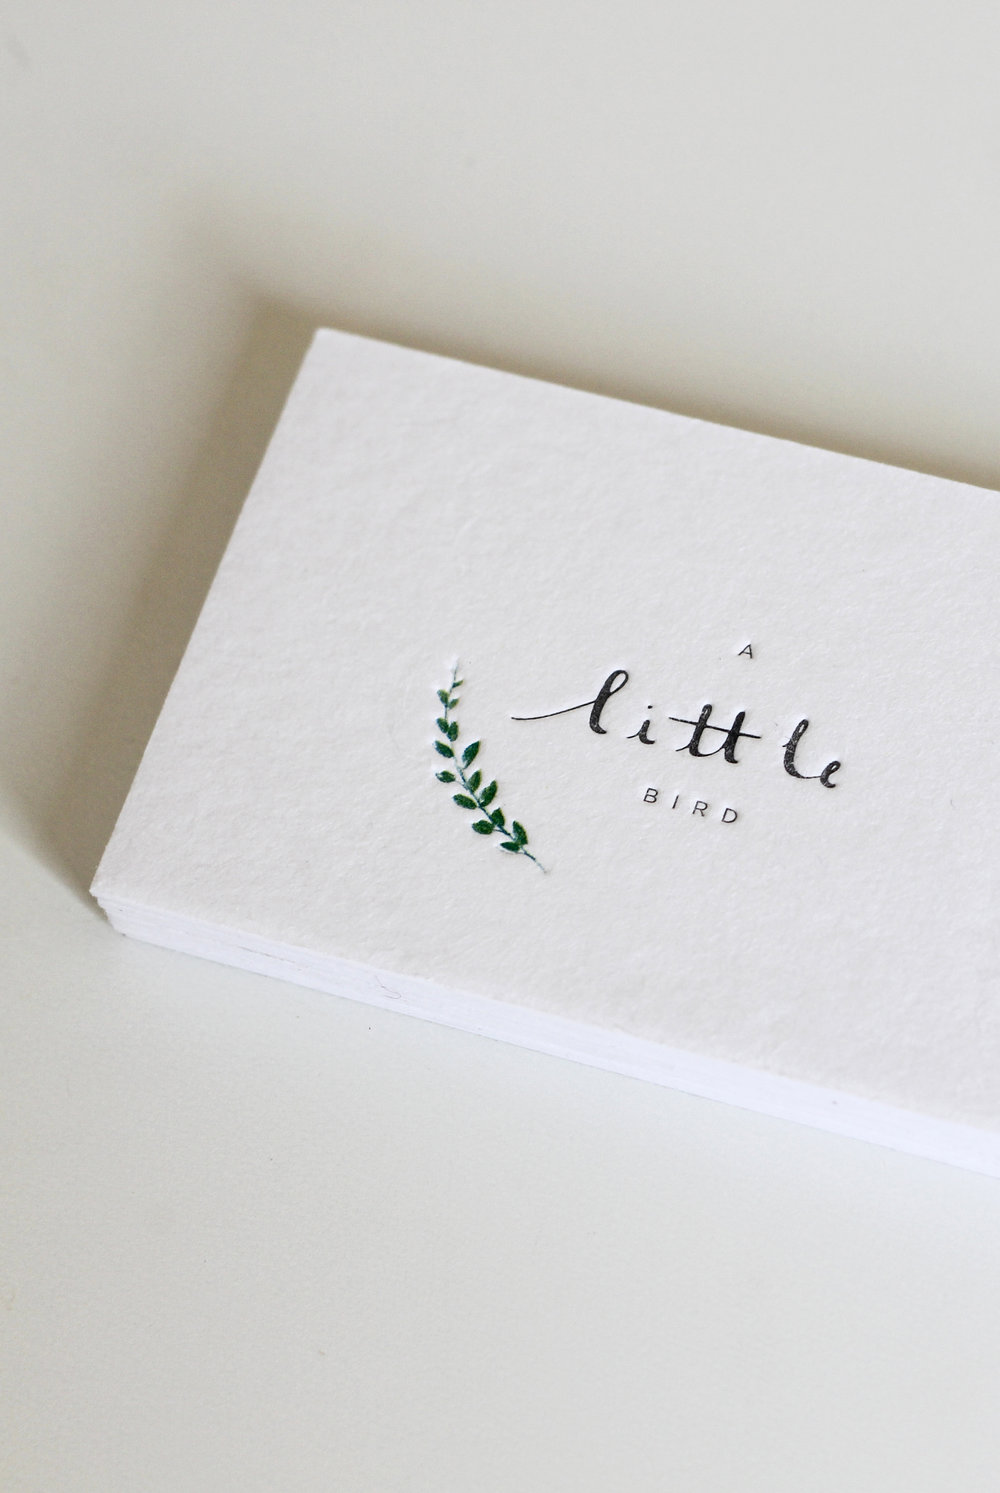 A Little bird/ branding & print design